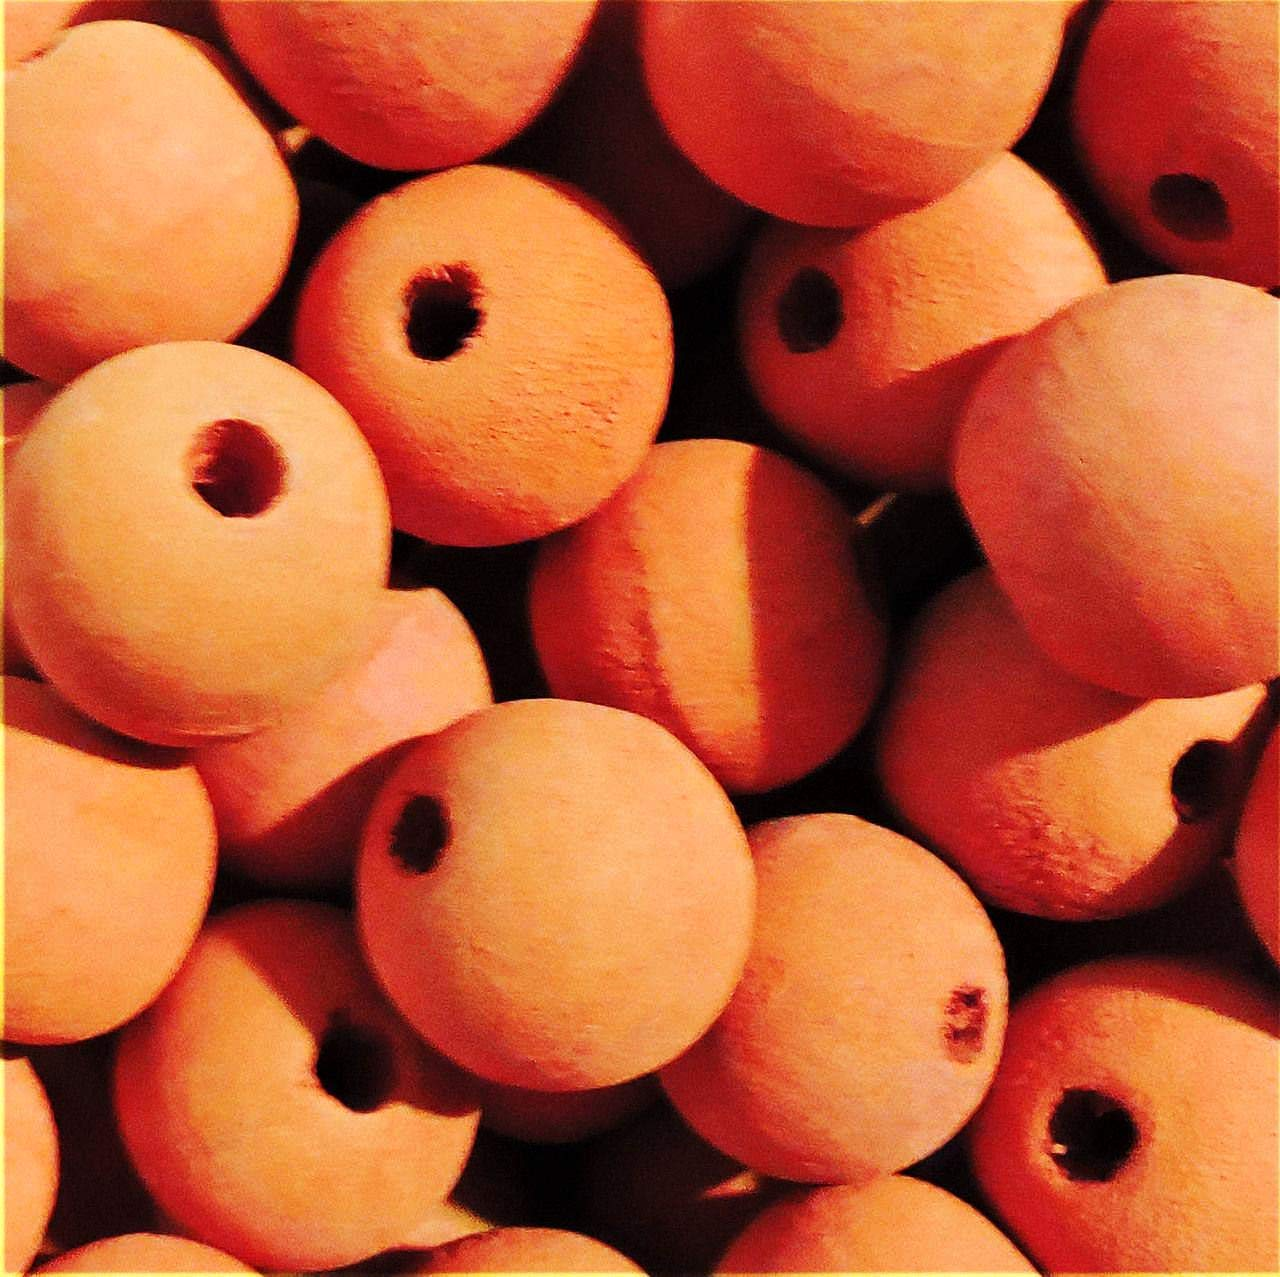 20mm Macrame Large 5mm Hole Round Rustic Rose Wood Beads You Design Them Orange per Pack 48 Beads